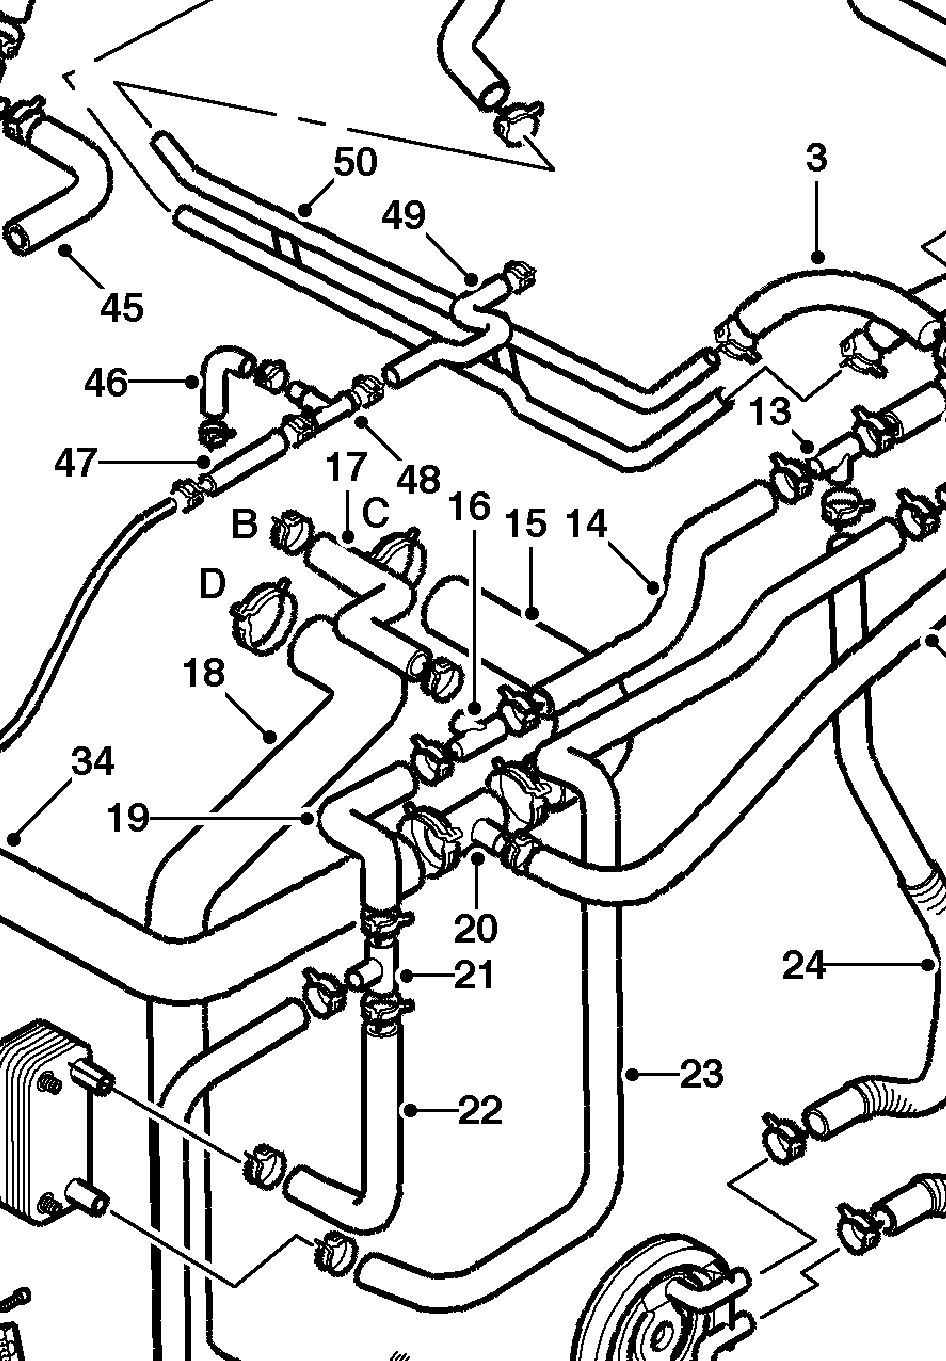 Help with v6 cooling system part number identification landyzone rh landyzone co uk 2002 land rover freelander cooling system diagram land rover discovery